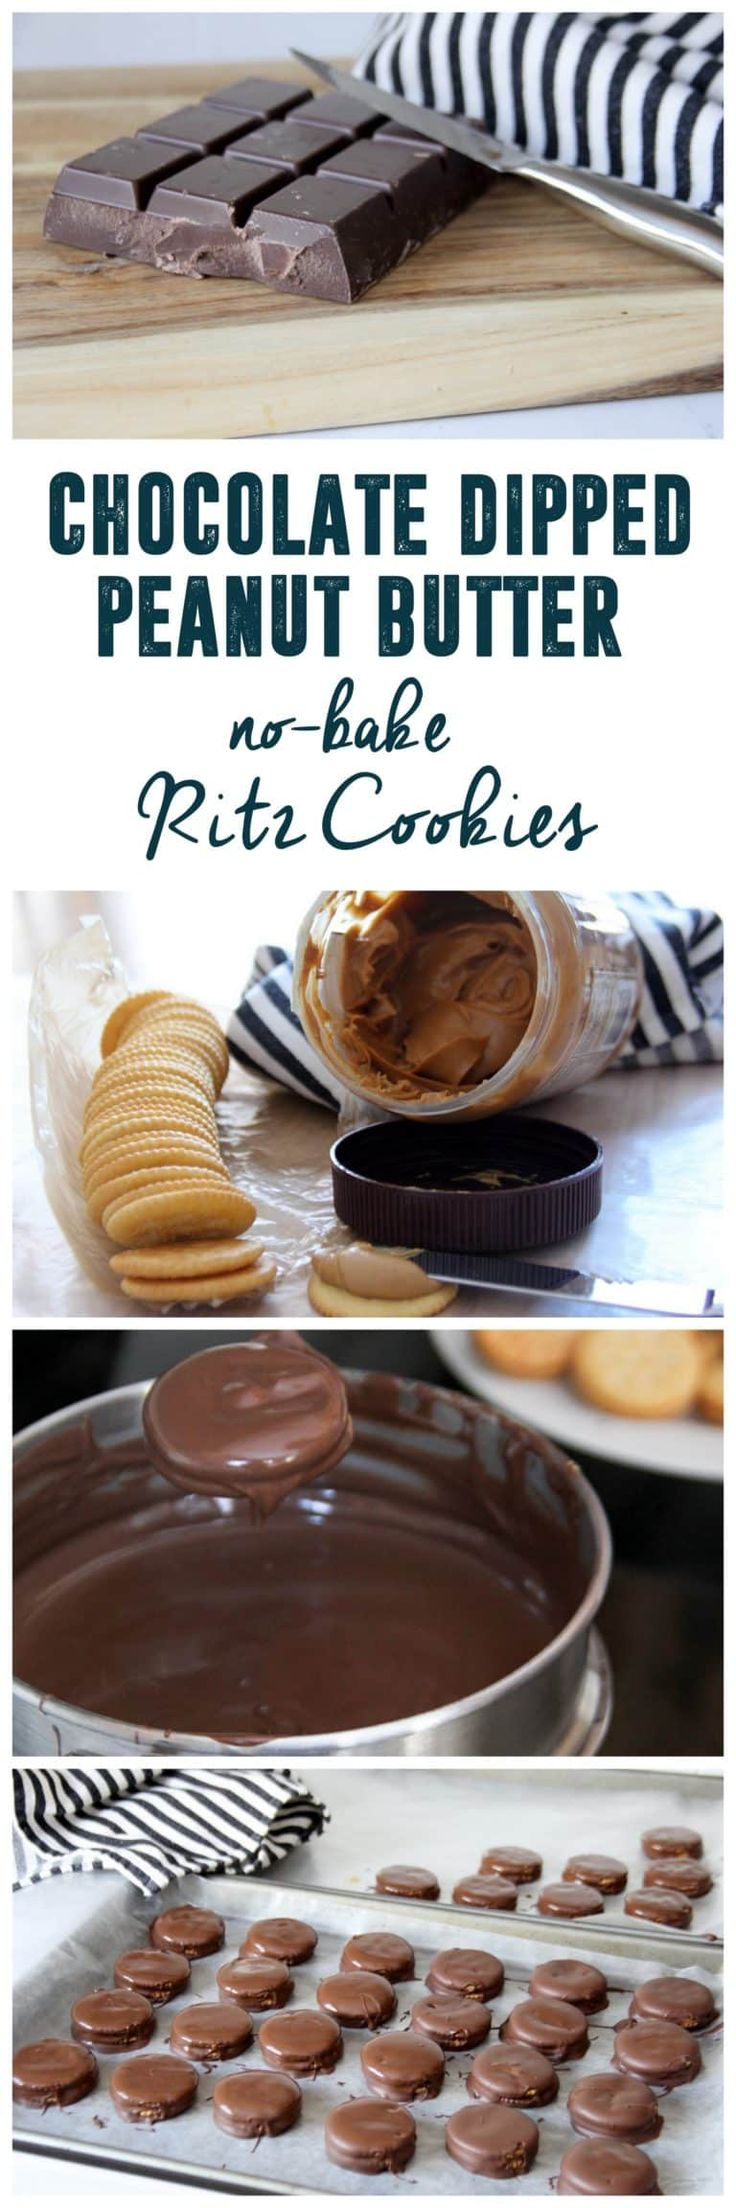 Chocolate Dipped Ritz with Peanut Butter Cookies